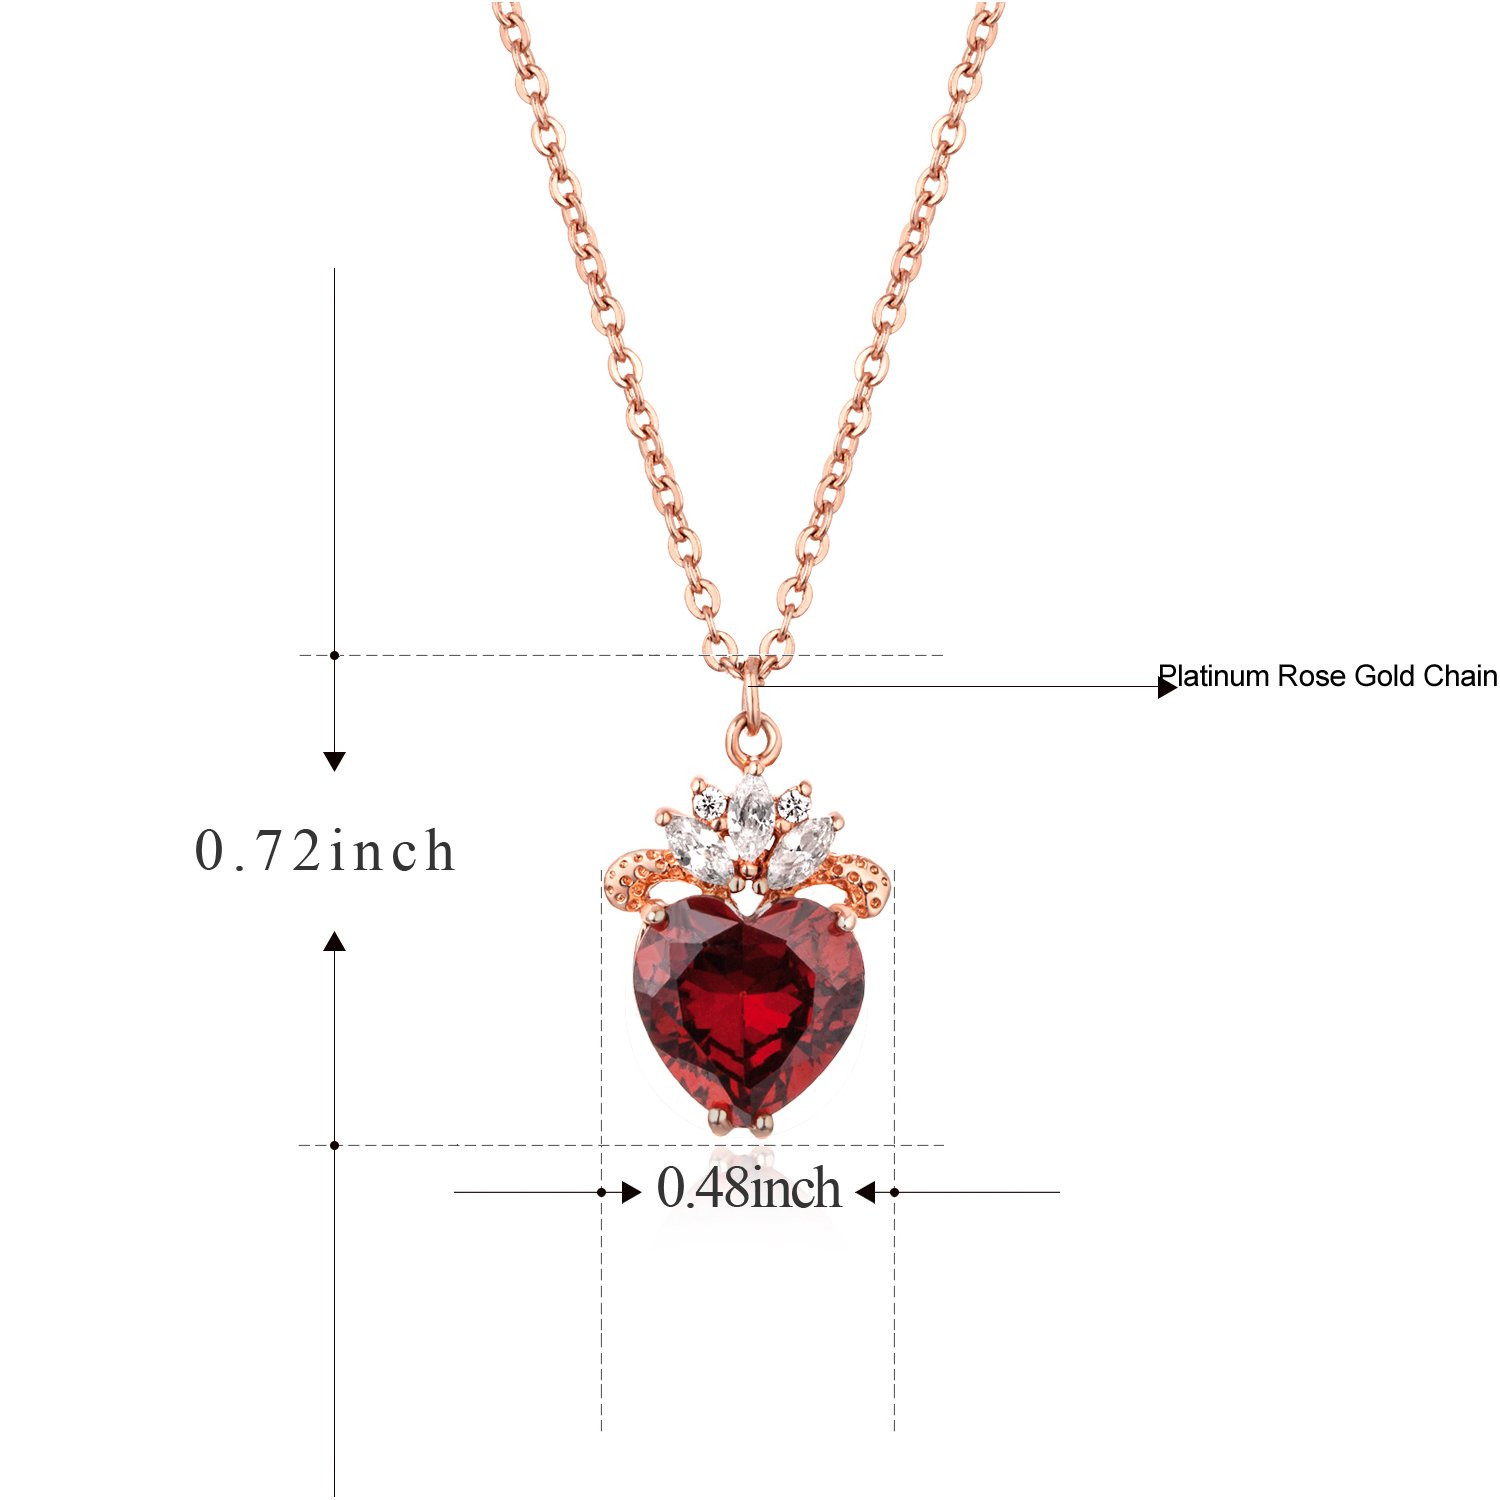 Vinjewelry Queen of Heart Rose Gold Plated Pendent Crown Design 5A Zircon Gift for Women vtsNBvEO